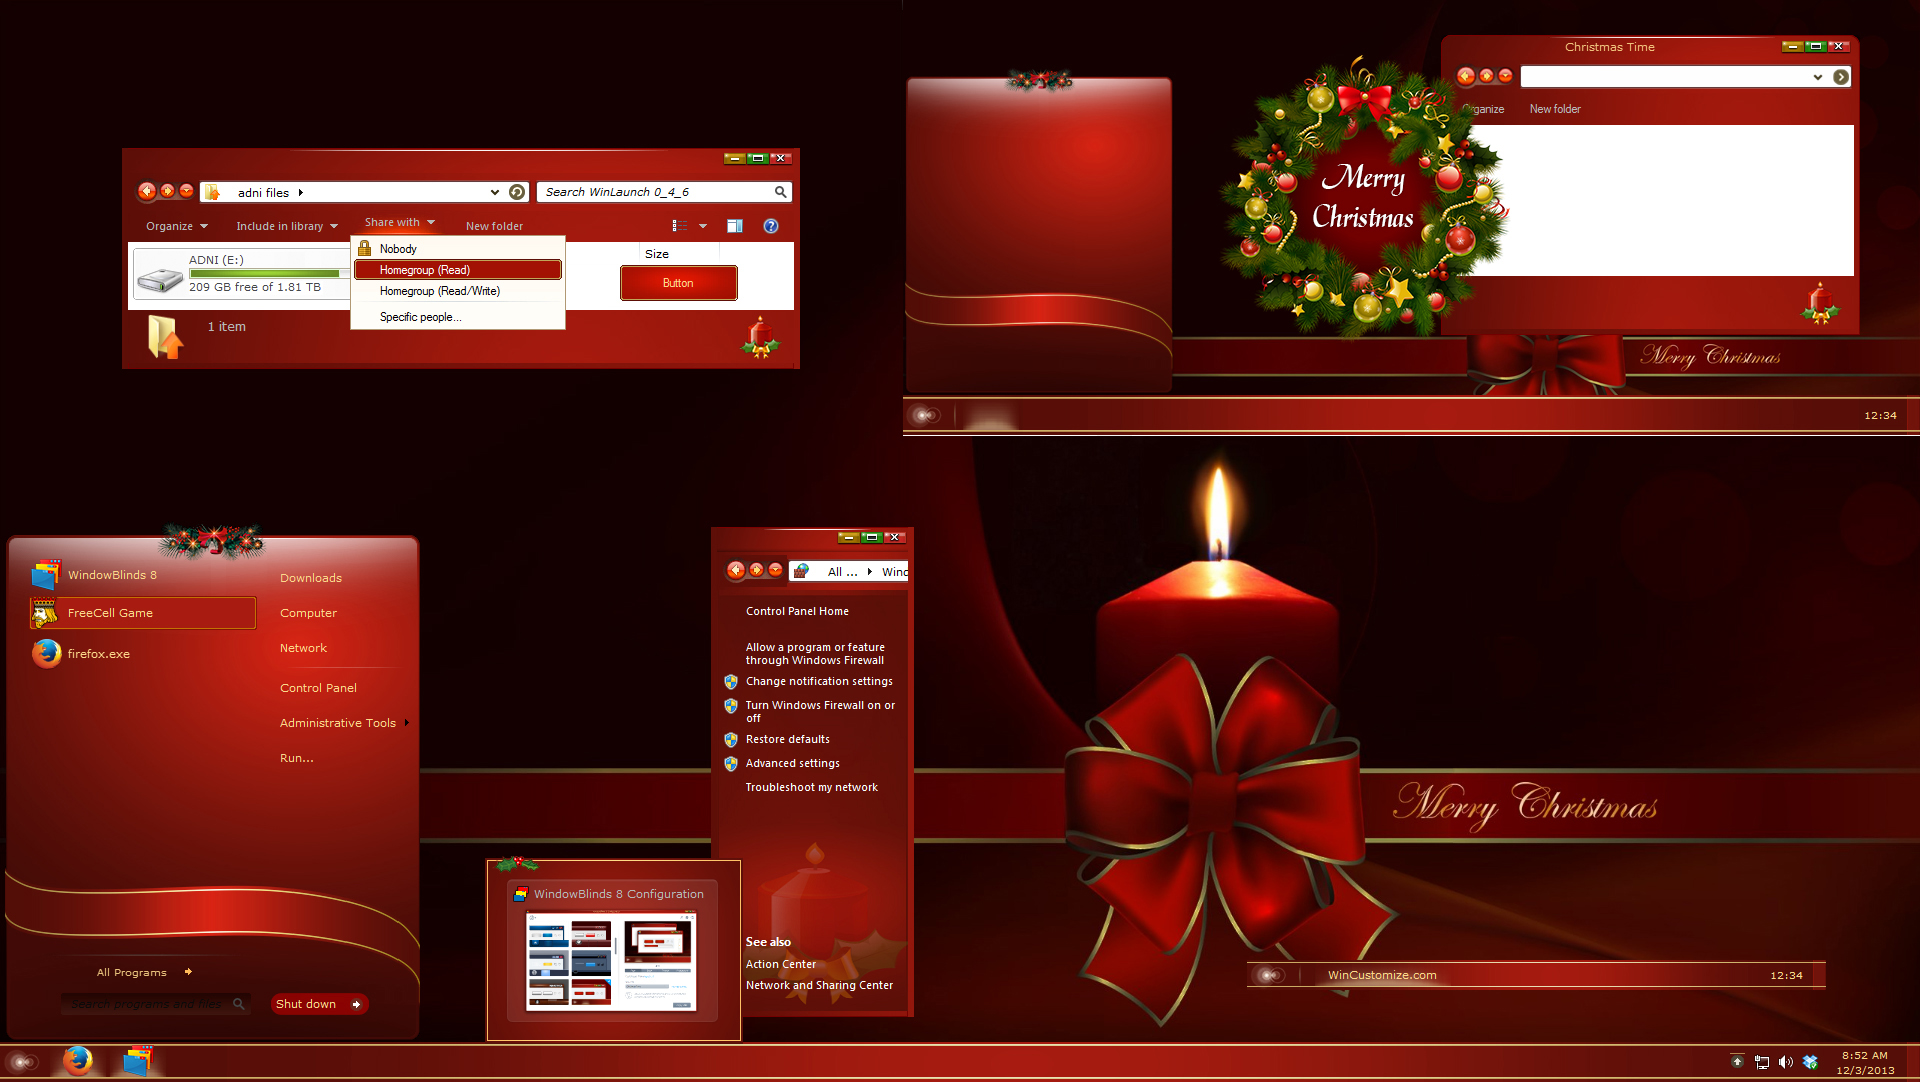 Christmas Time - [Premium Theme]